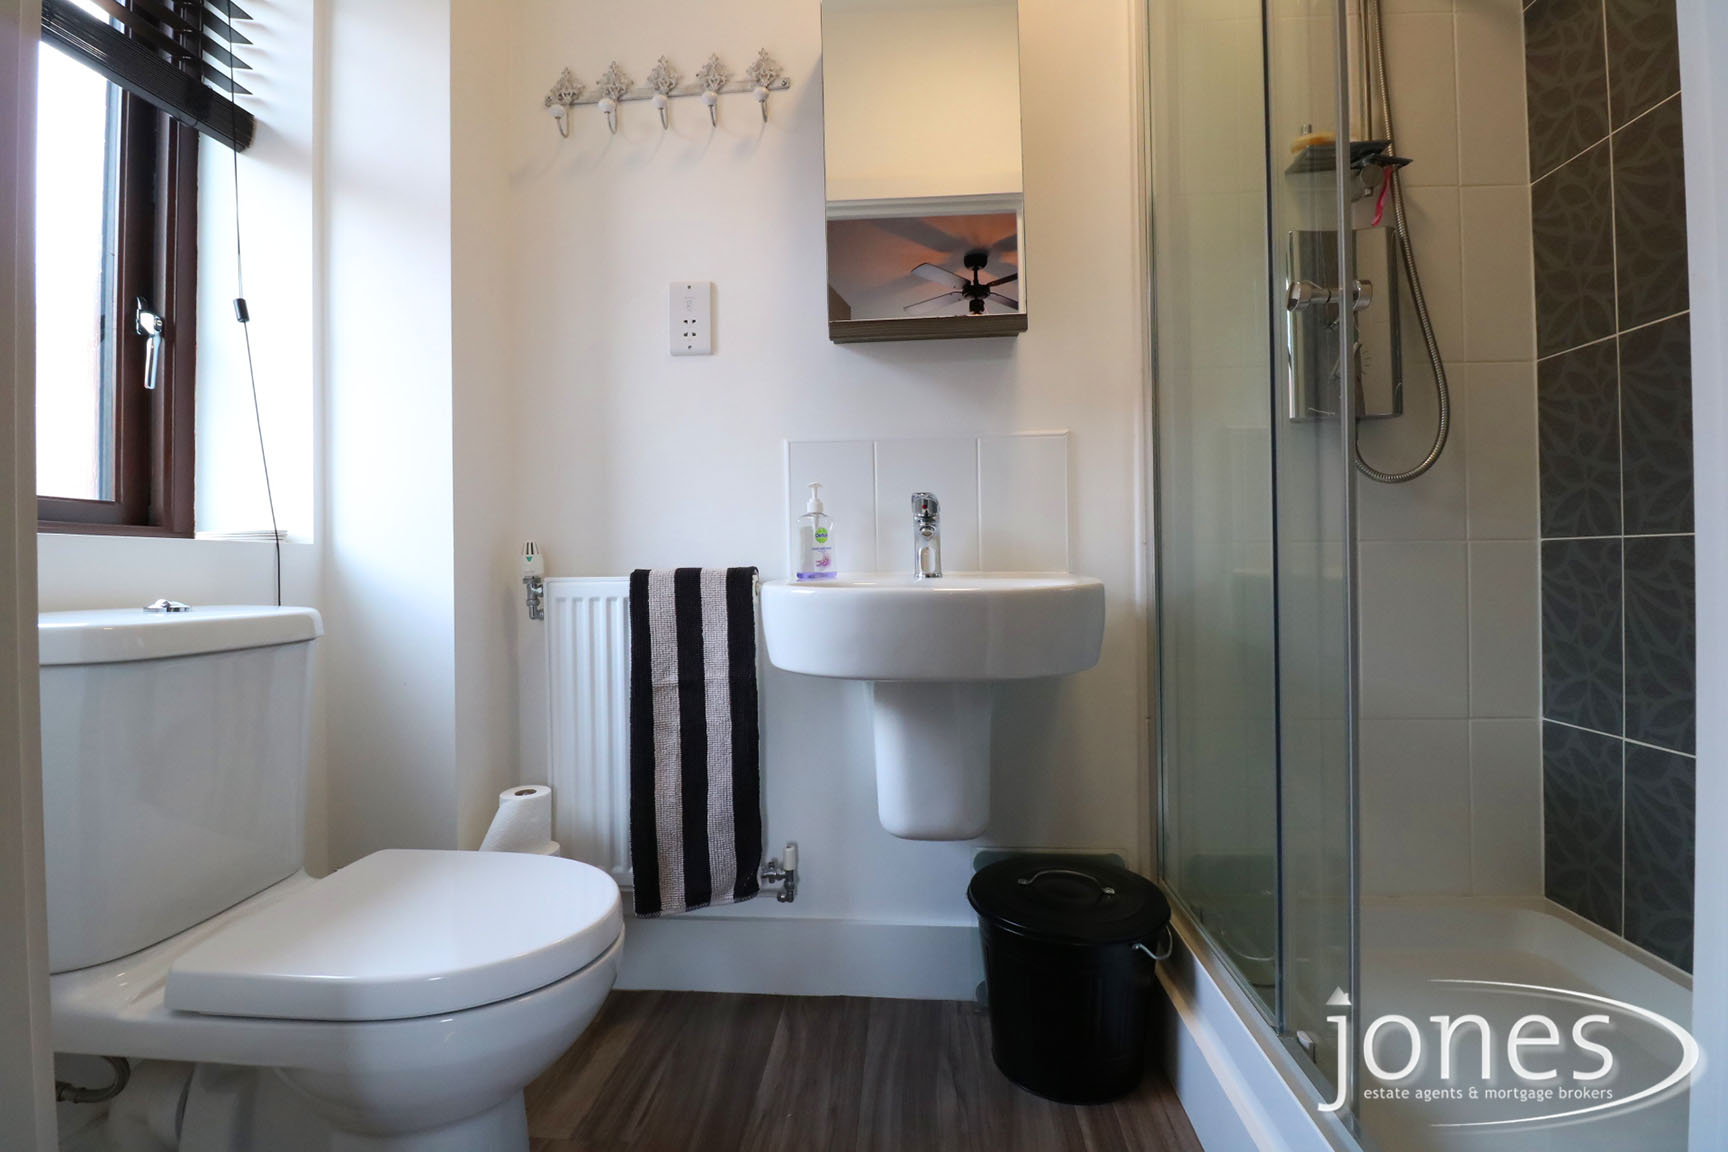 Home for Sale Let - Photo 11 Brookby Court, ,Stockton on Tees,TS18 2SX